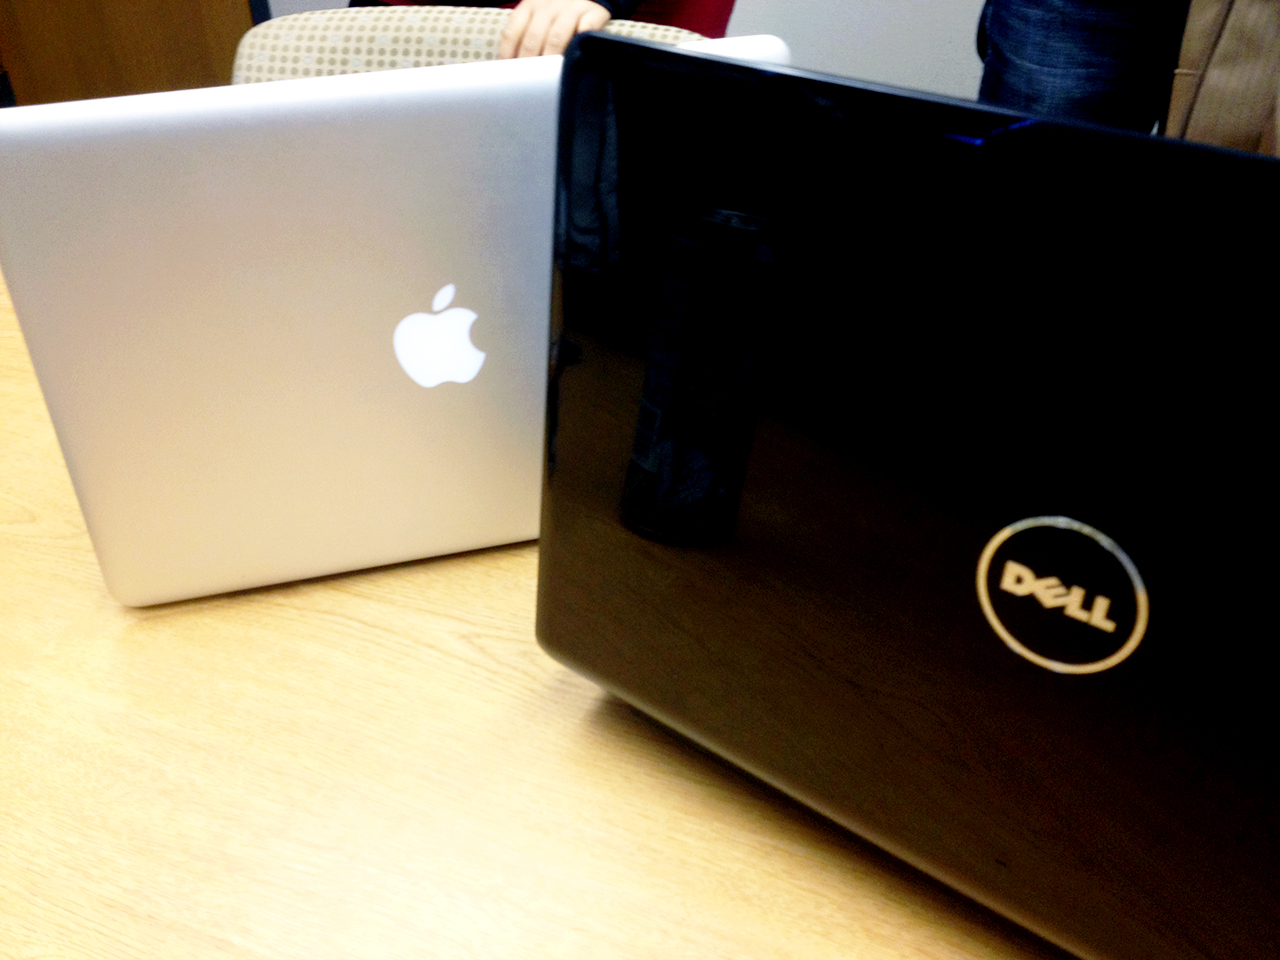 Photo by Emma Connell. While some professors encourage laptop use, others prohibit it during their classes.